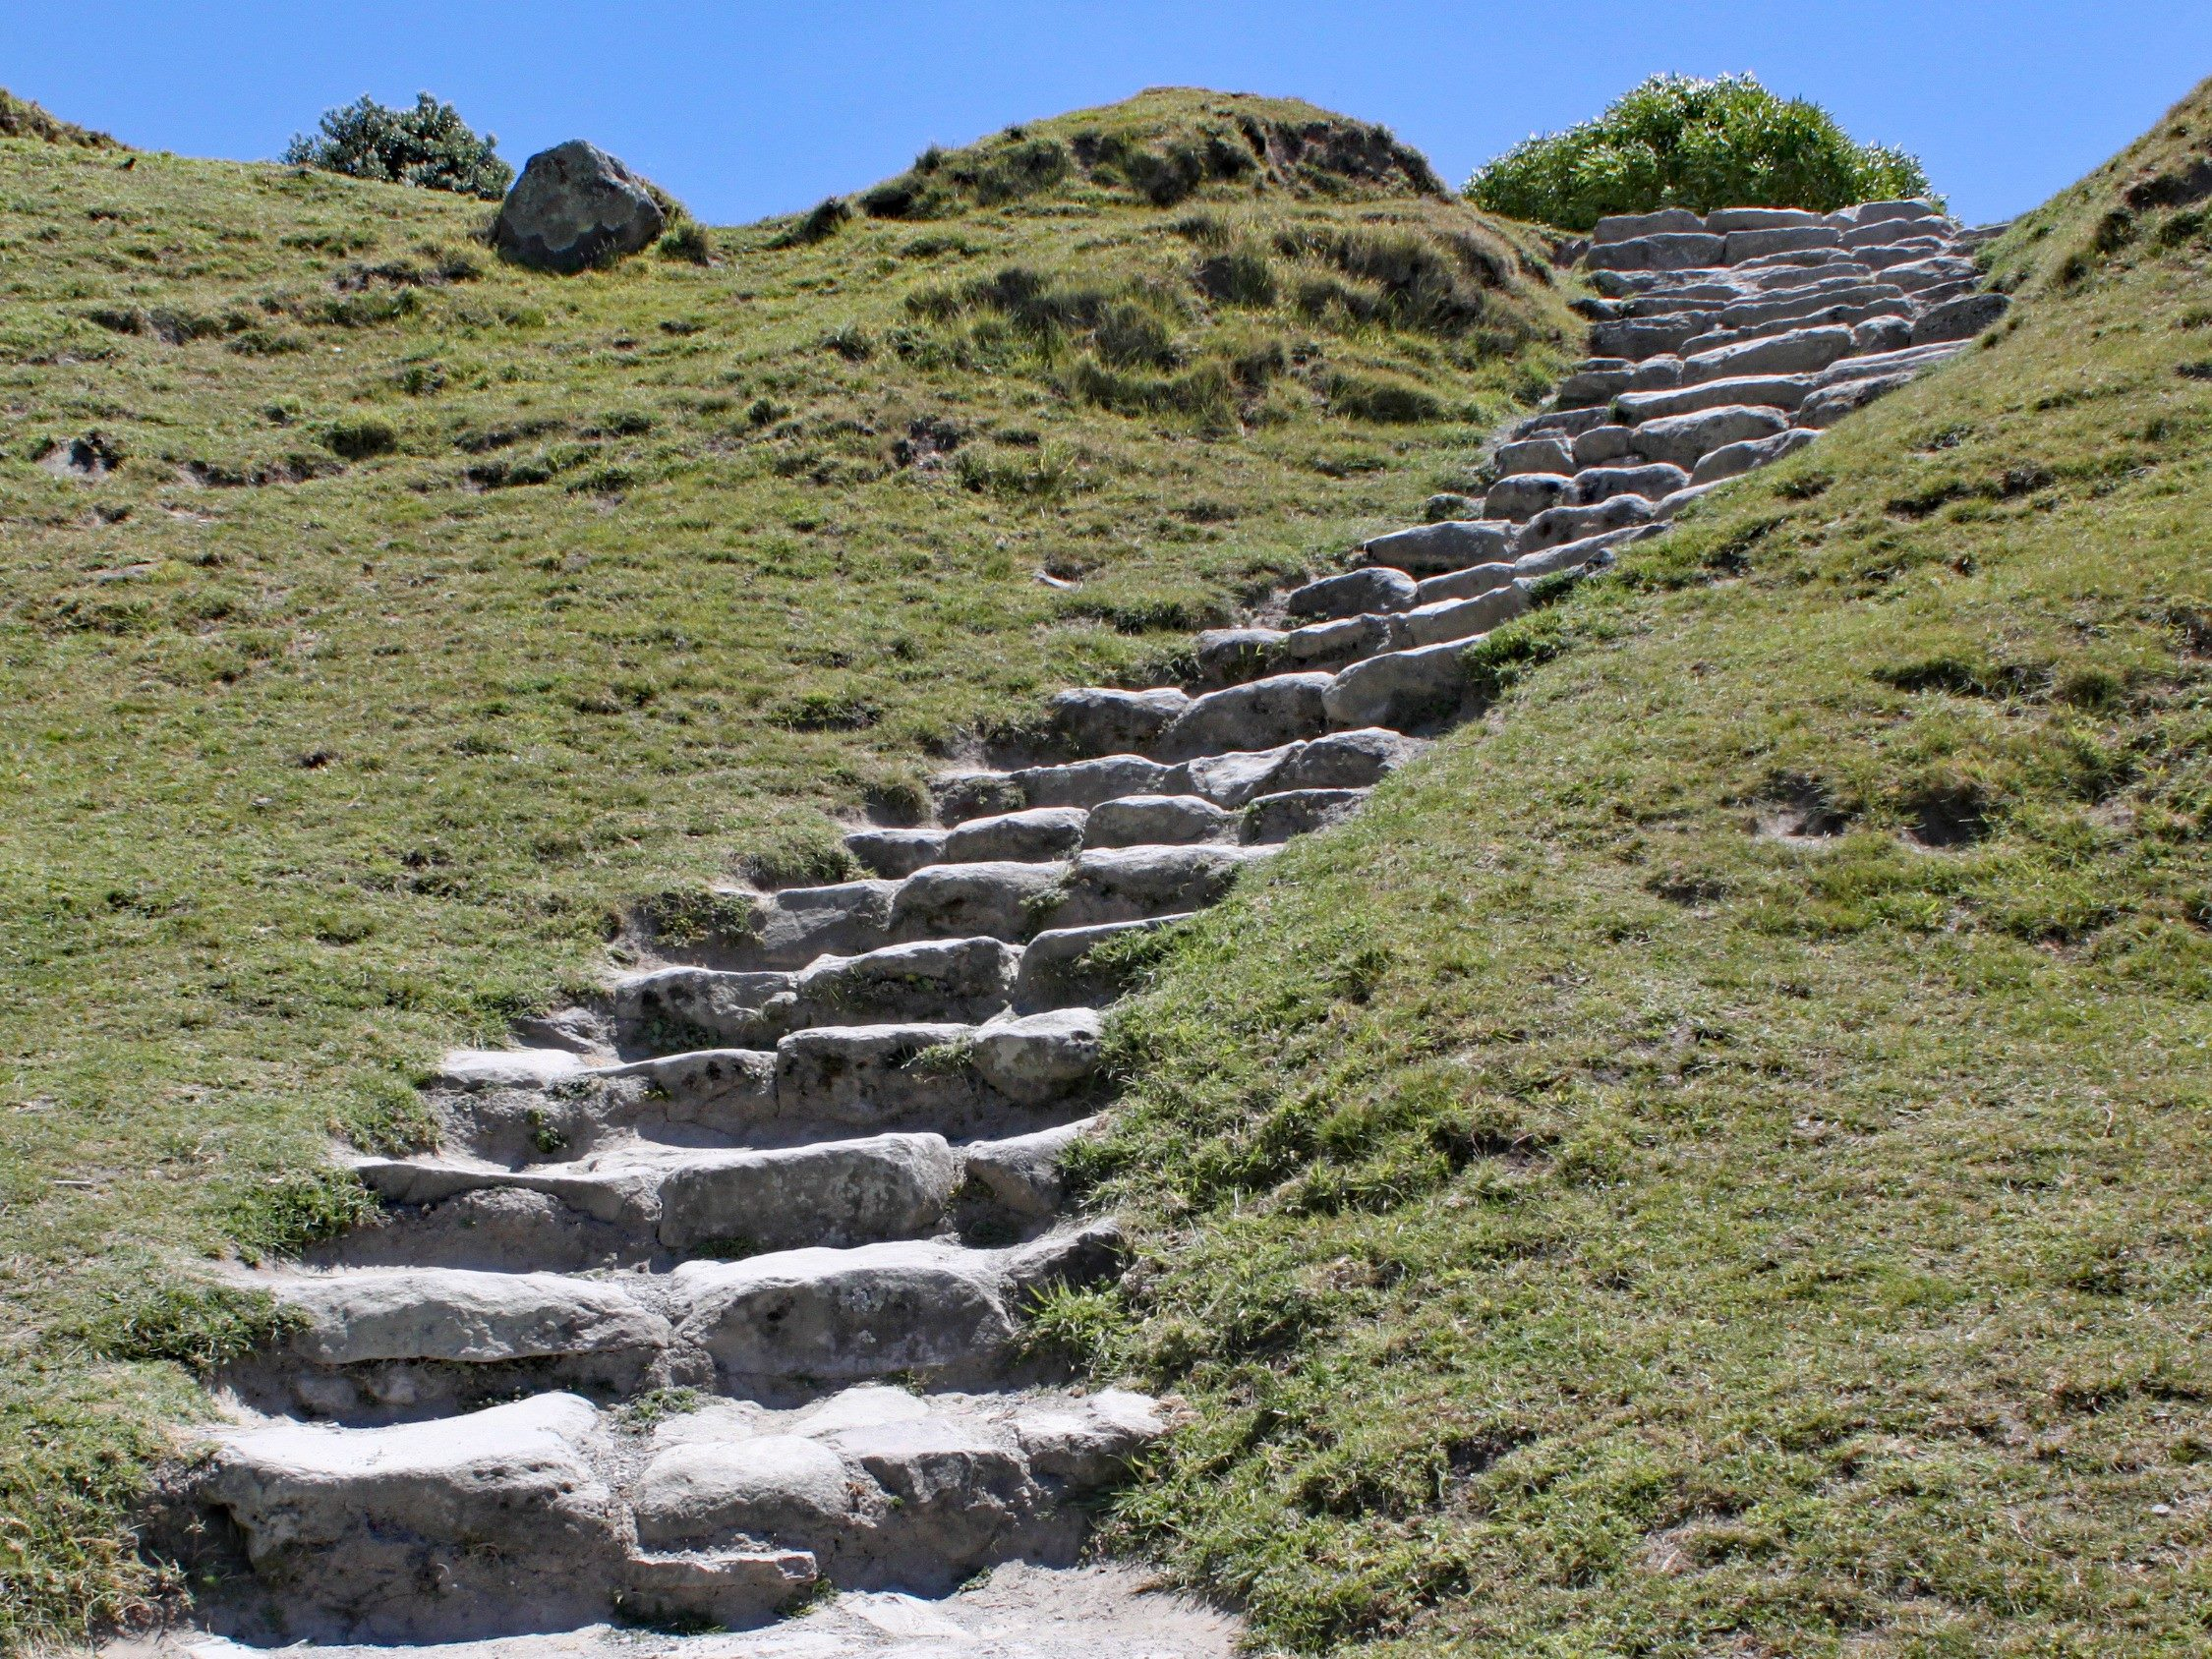 Stone steps cut into a grassy bank leading up the hillside to the summit.